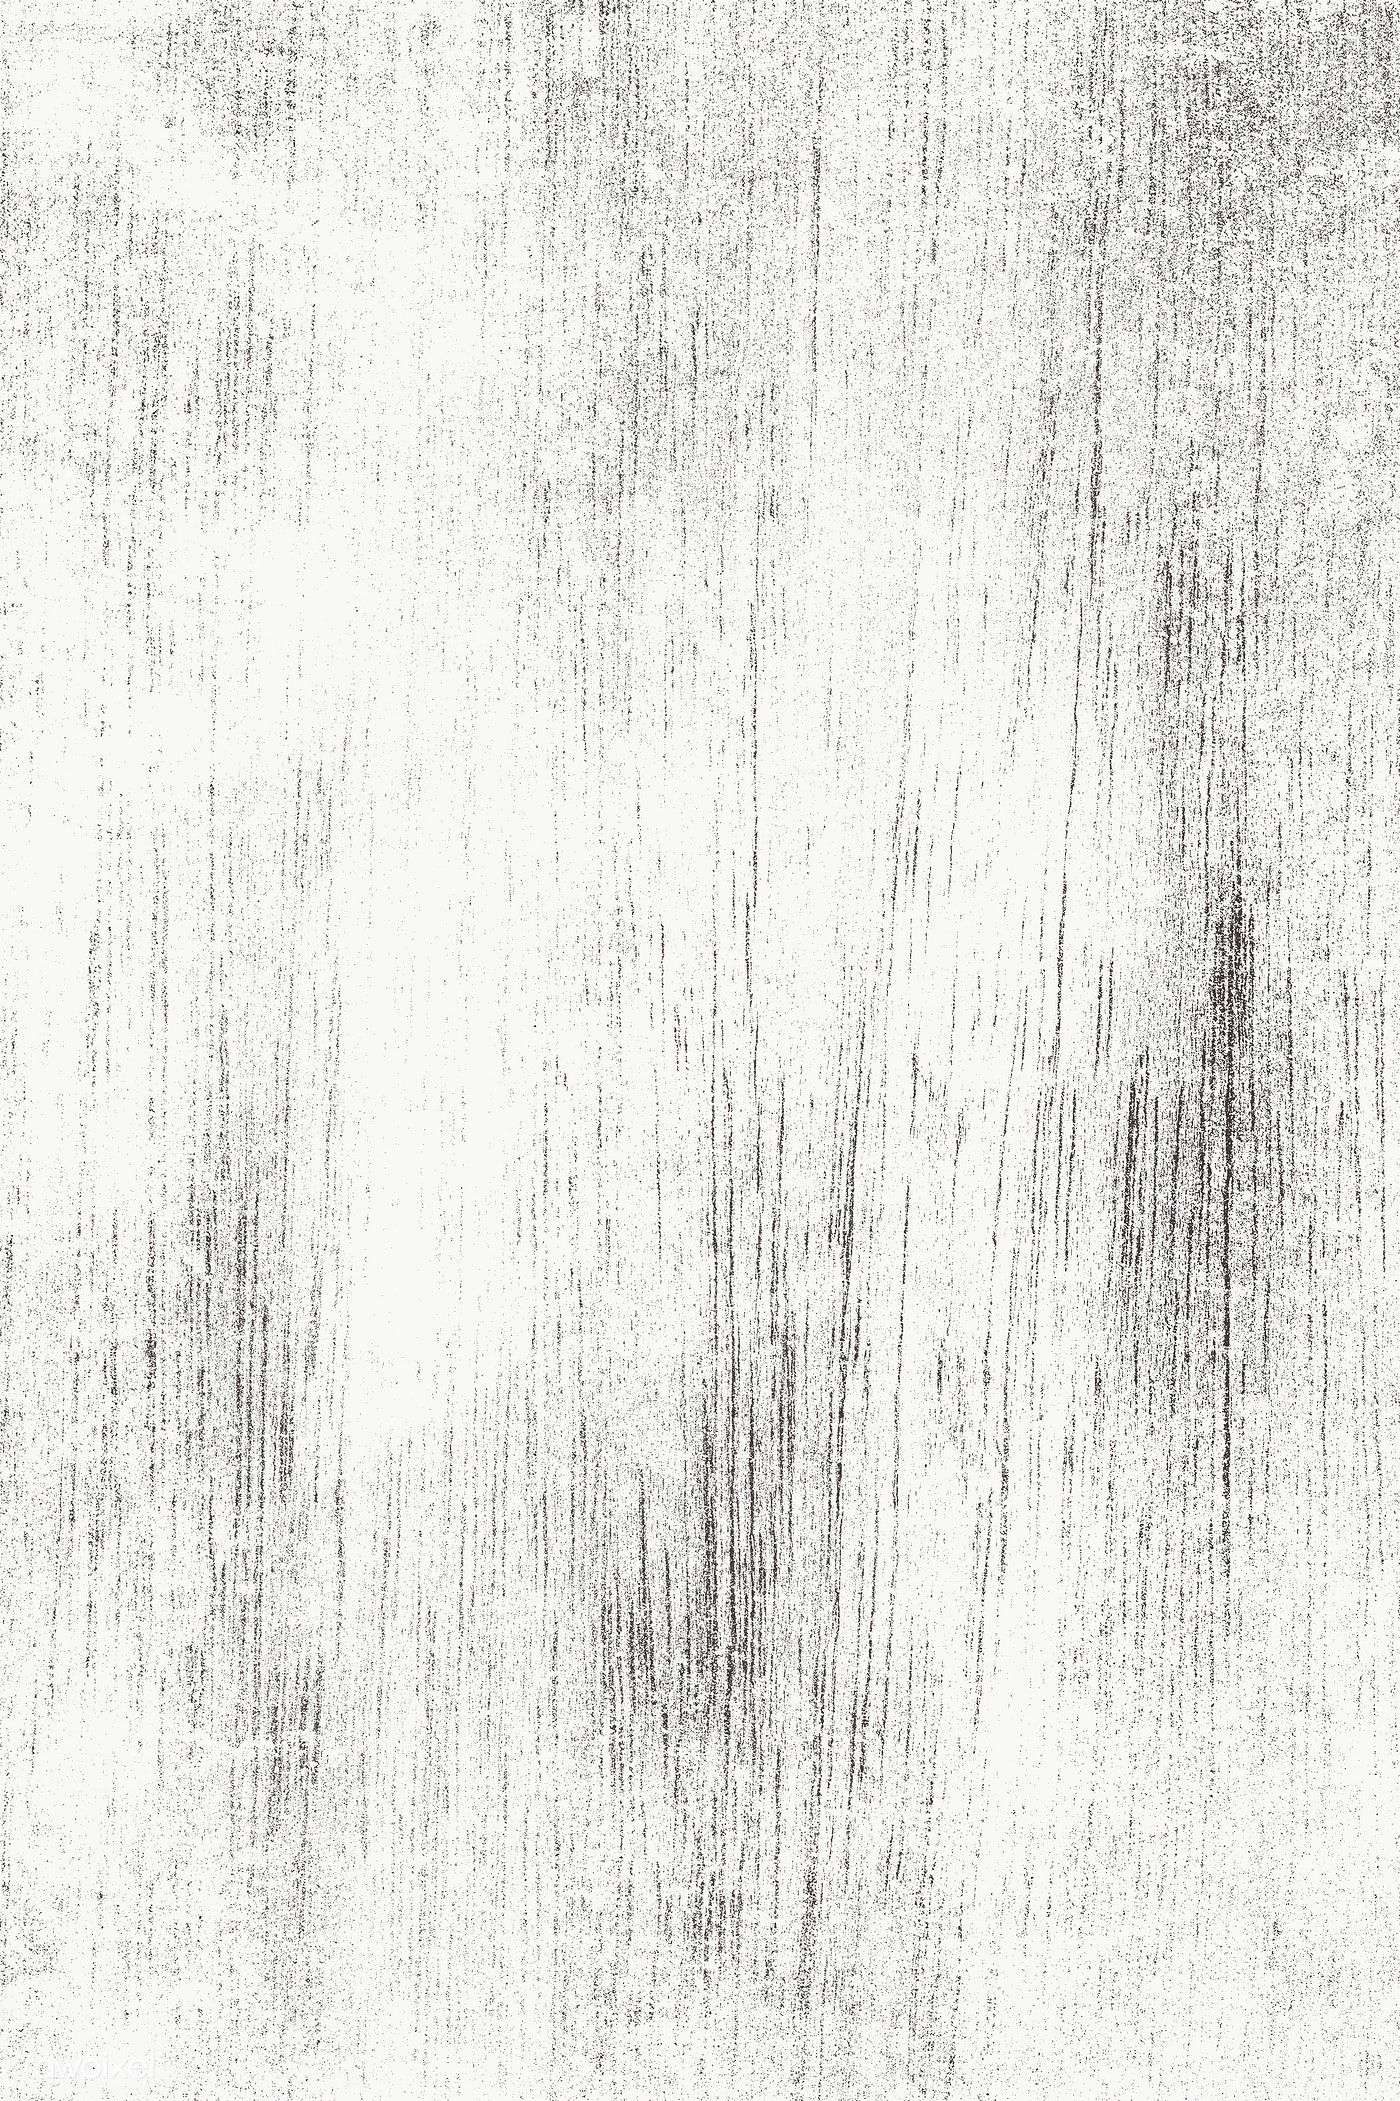 Bleach Wooden Textured Design Background Transparent Png Free Image By Rawpixel Com Adj Wood Texture Background White Wood Texture Textured Background